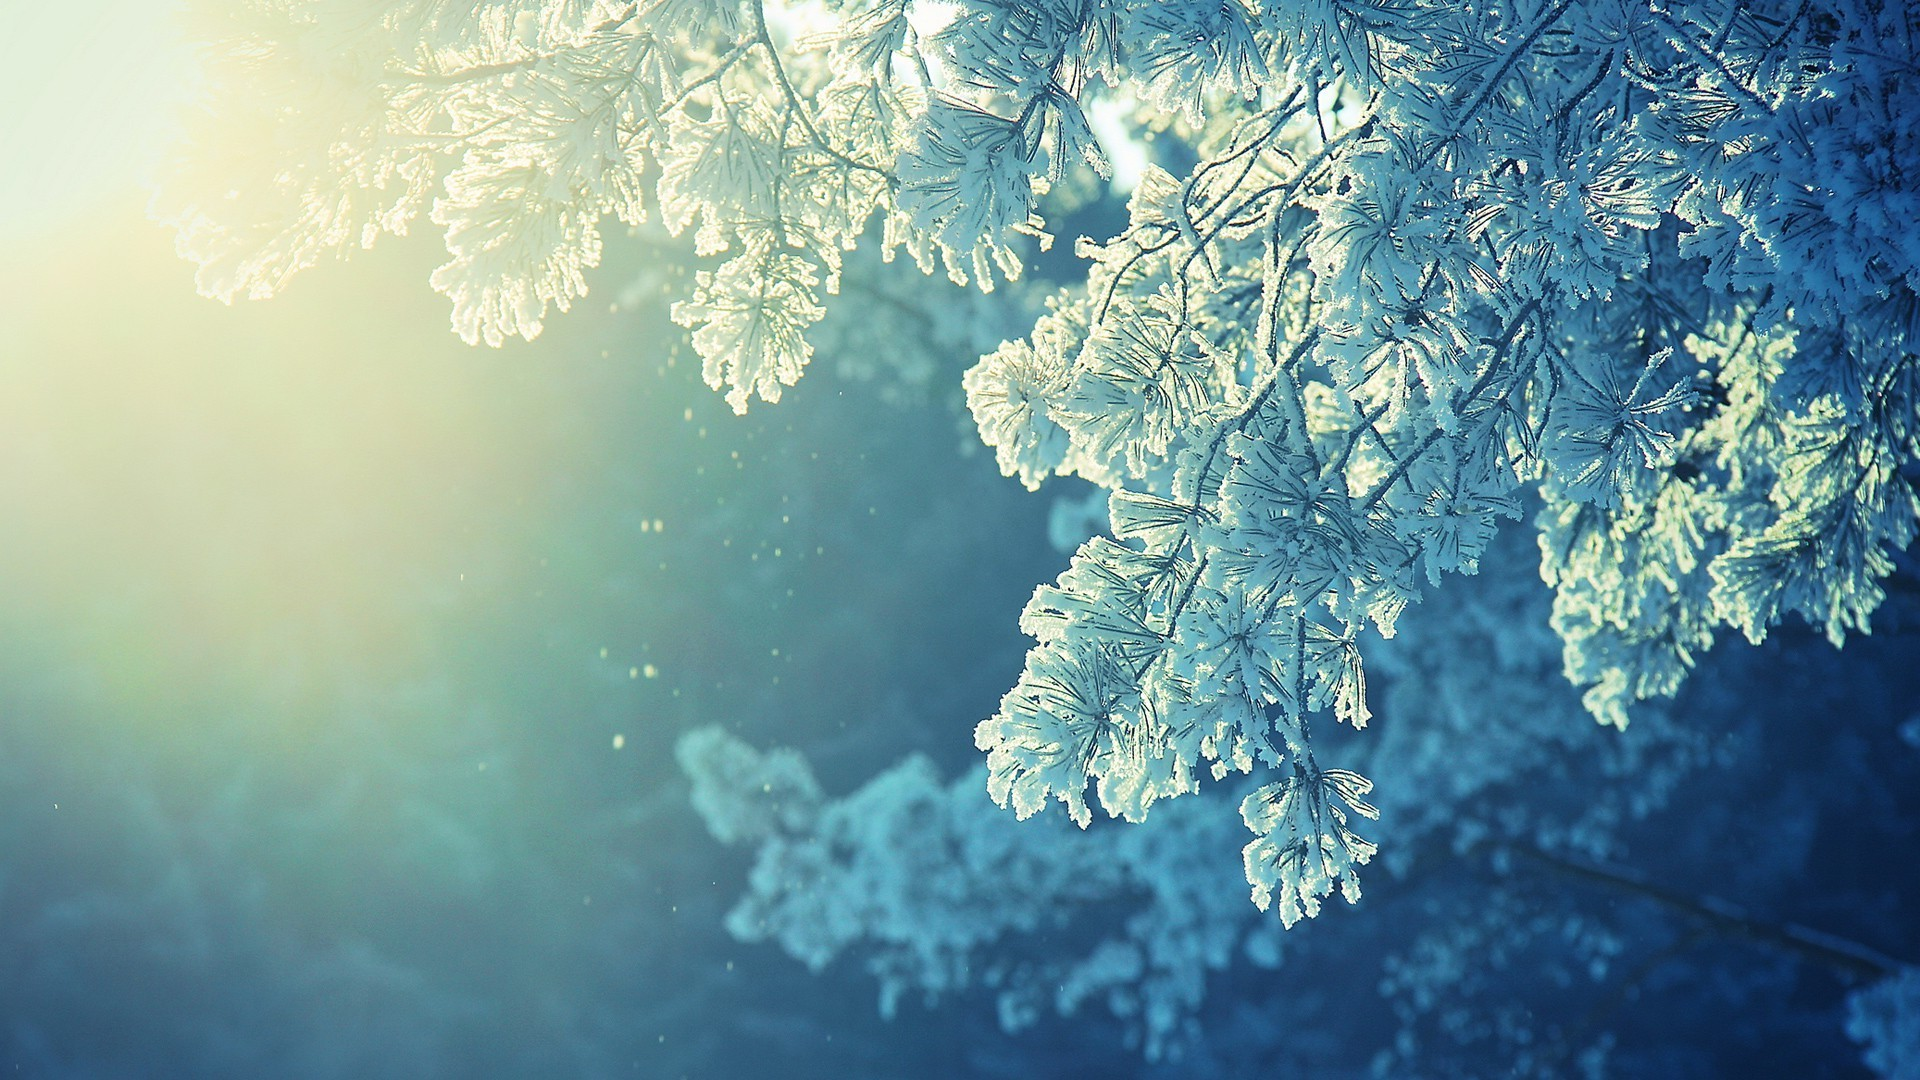 Res: 1920x1080, anime, Nature, Snow, Winter, Cold, Sunlight, Peaceful Wallpapers HD /  Desktop and Mobile Backgrounds